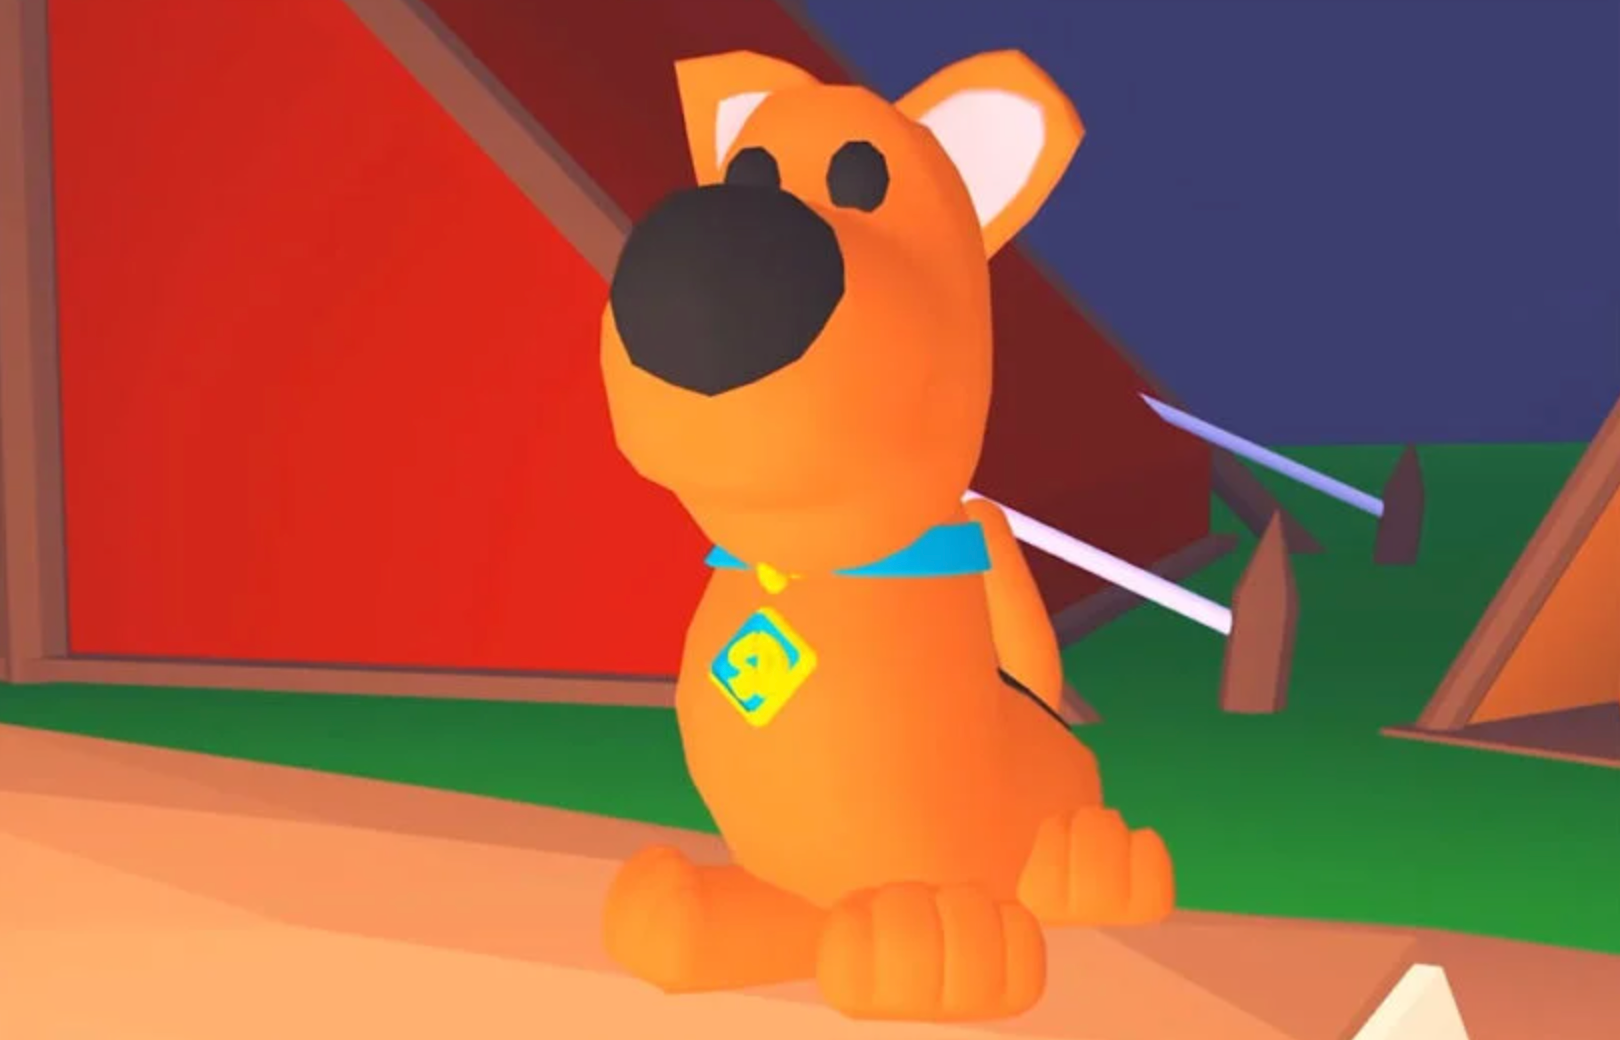 How To Keep Scoob Forever In Adopt Me Unfortunately You Can T